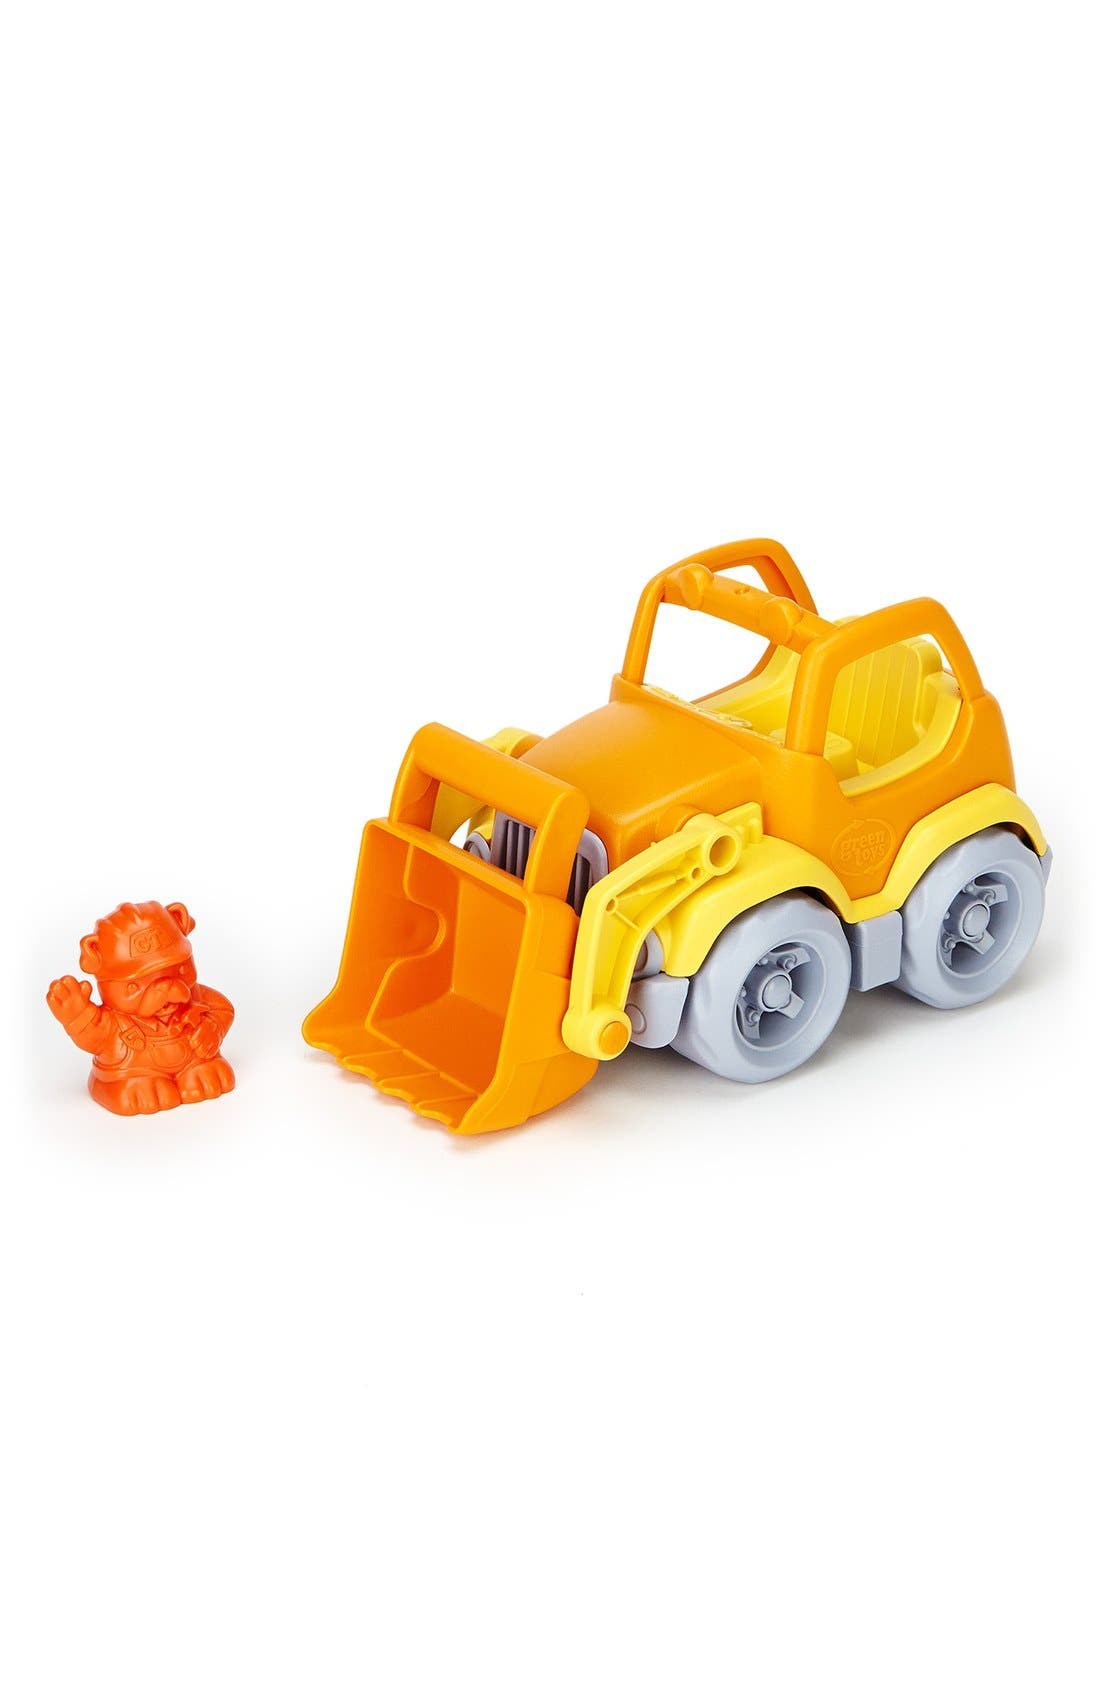 'Scooper' Toy Construction Truck,                             Alternate thumbnail 2, color,                             800